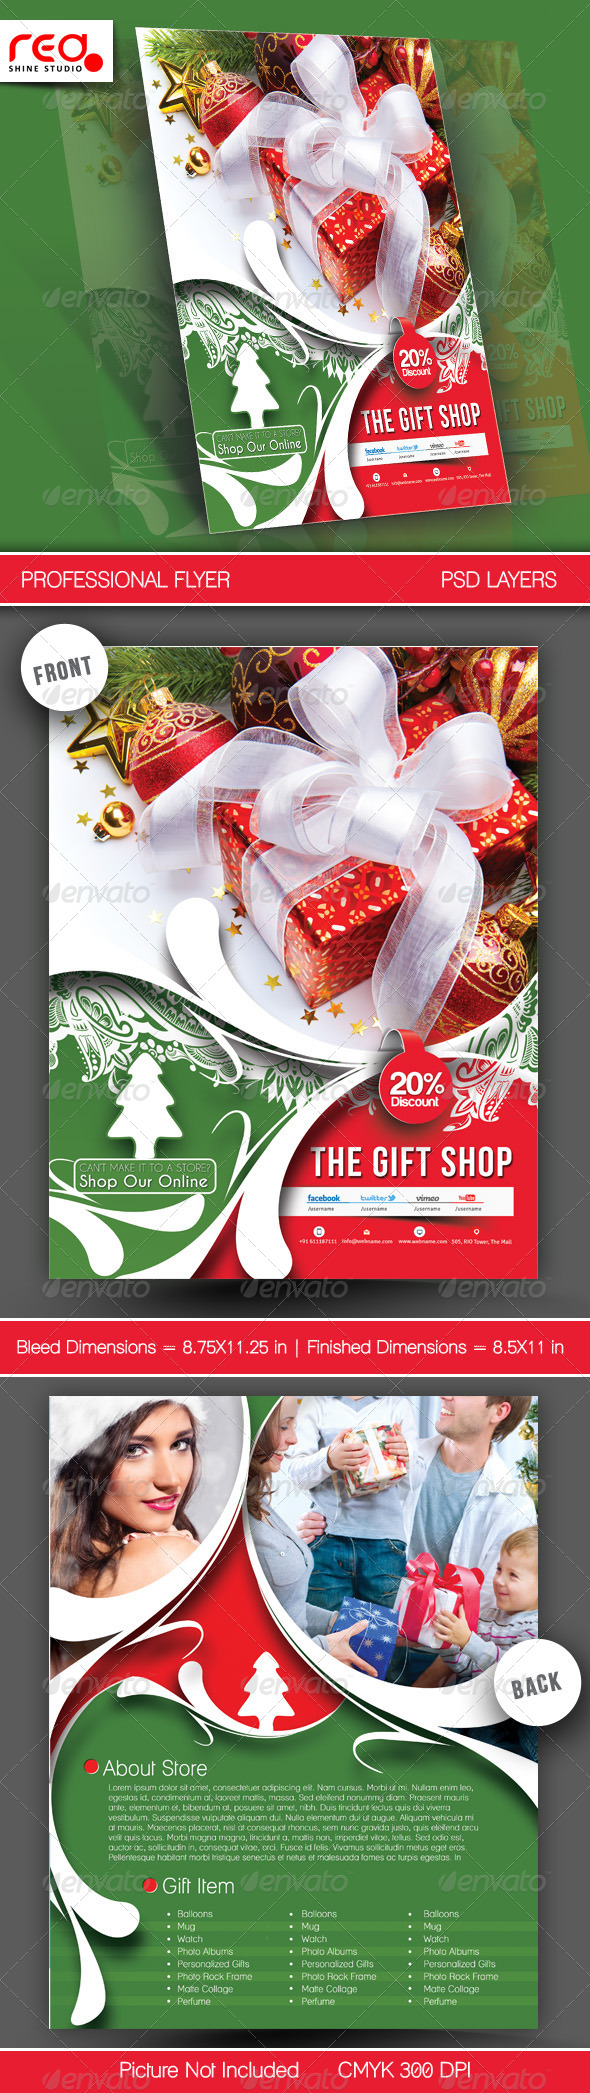 Gift Shop Flyer Poster Template - 2 - Commerce Flyers